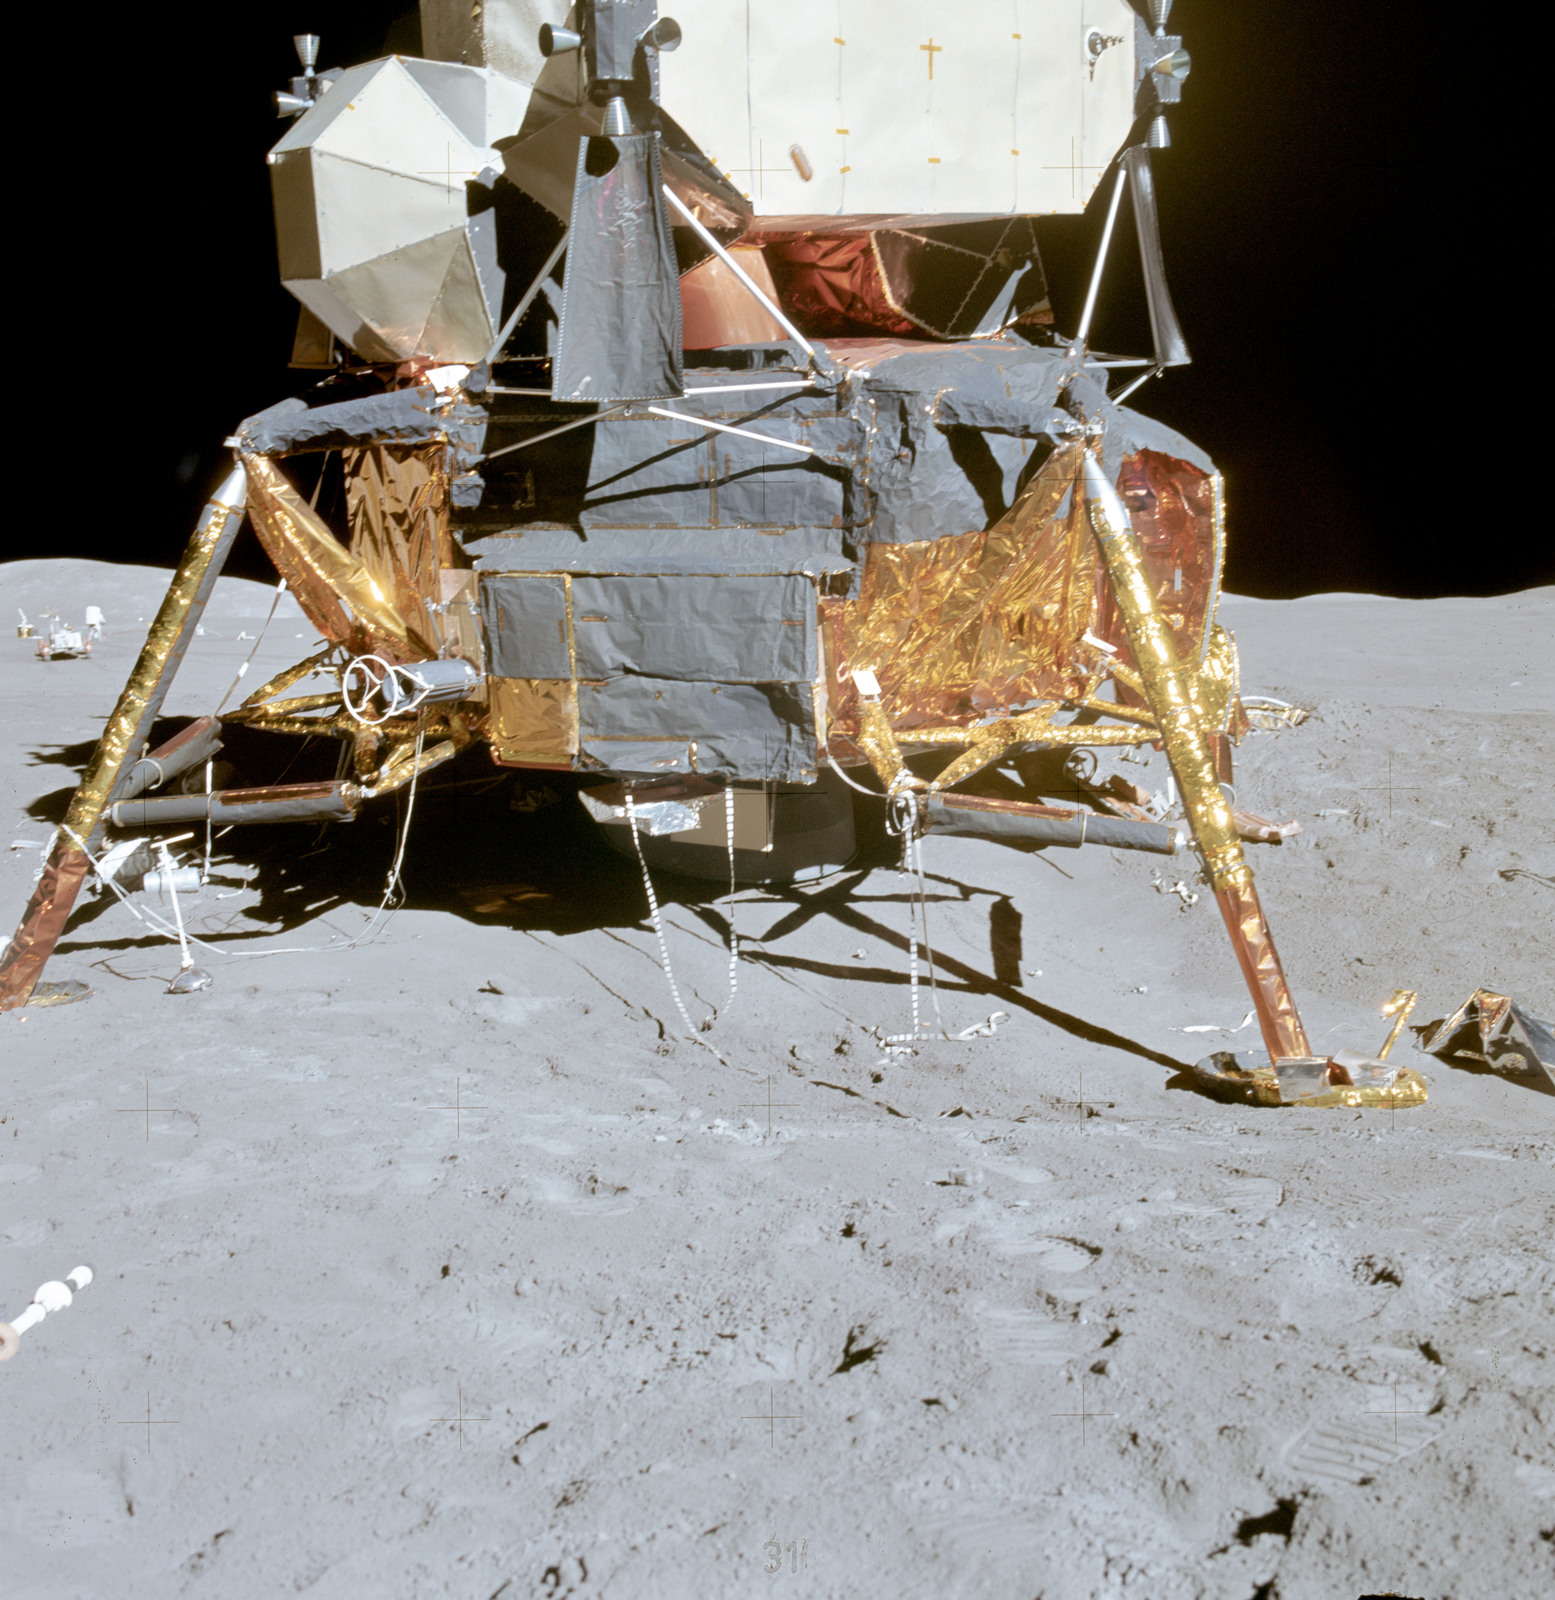 AS15-87-11839 - Apollo 15 - Apollo 15 Mission image - Panoramic southeast view of Lunar Module (LM), with LM in forground and ALSEP and Hill 305 in background